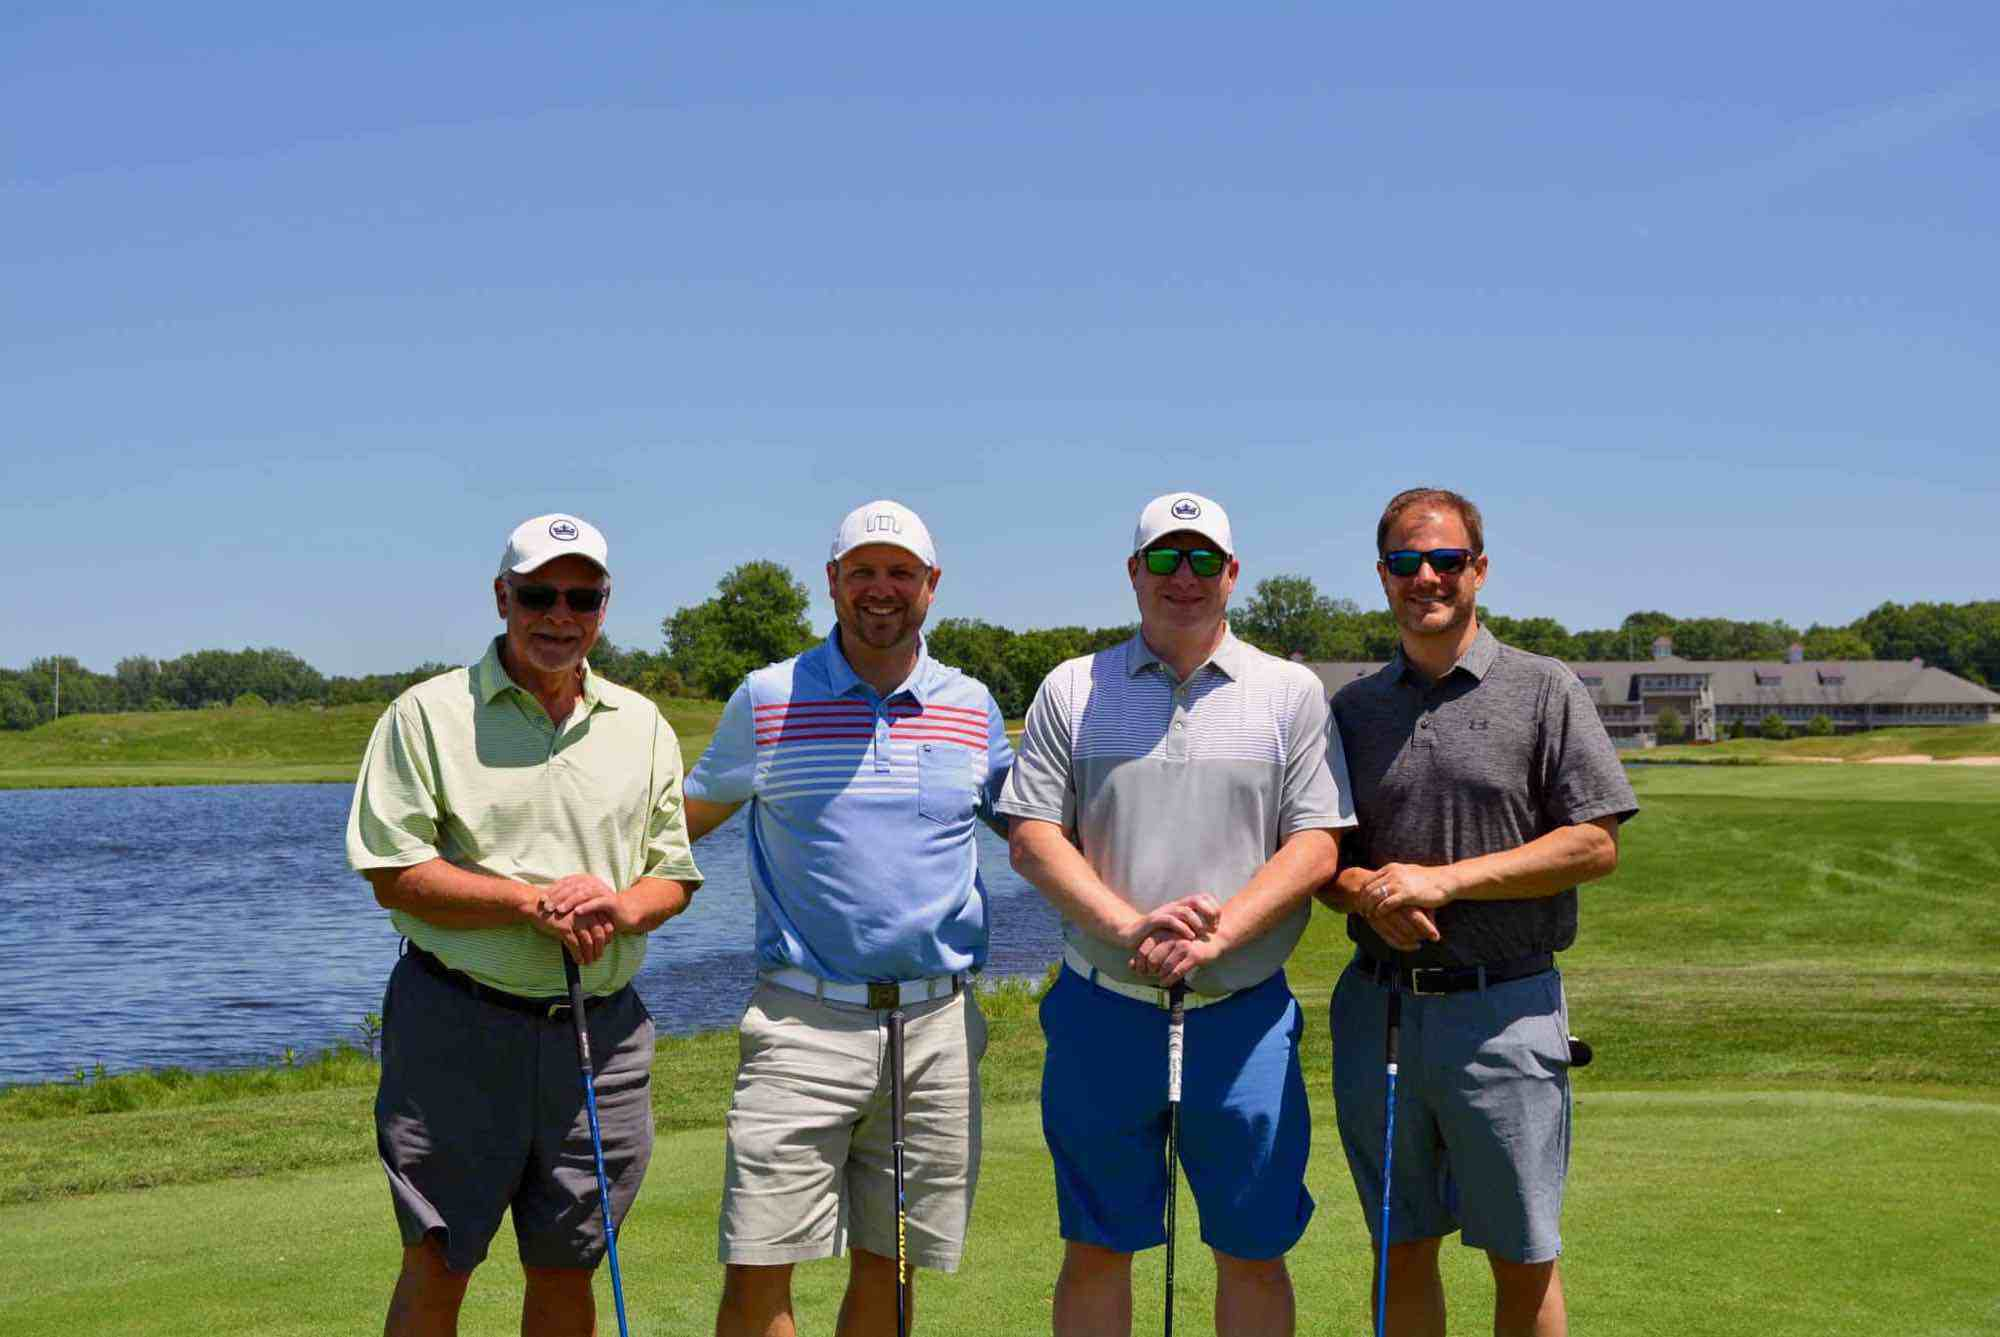 WINDEMULLER ELECTRIC, INC. - SCRAMBLE RUNNER-UP (Left to right): Chuck Alles, Steve Alles, Josh Alles, Tim Alles